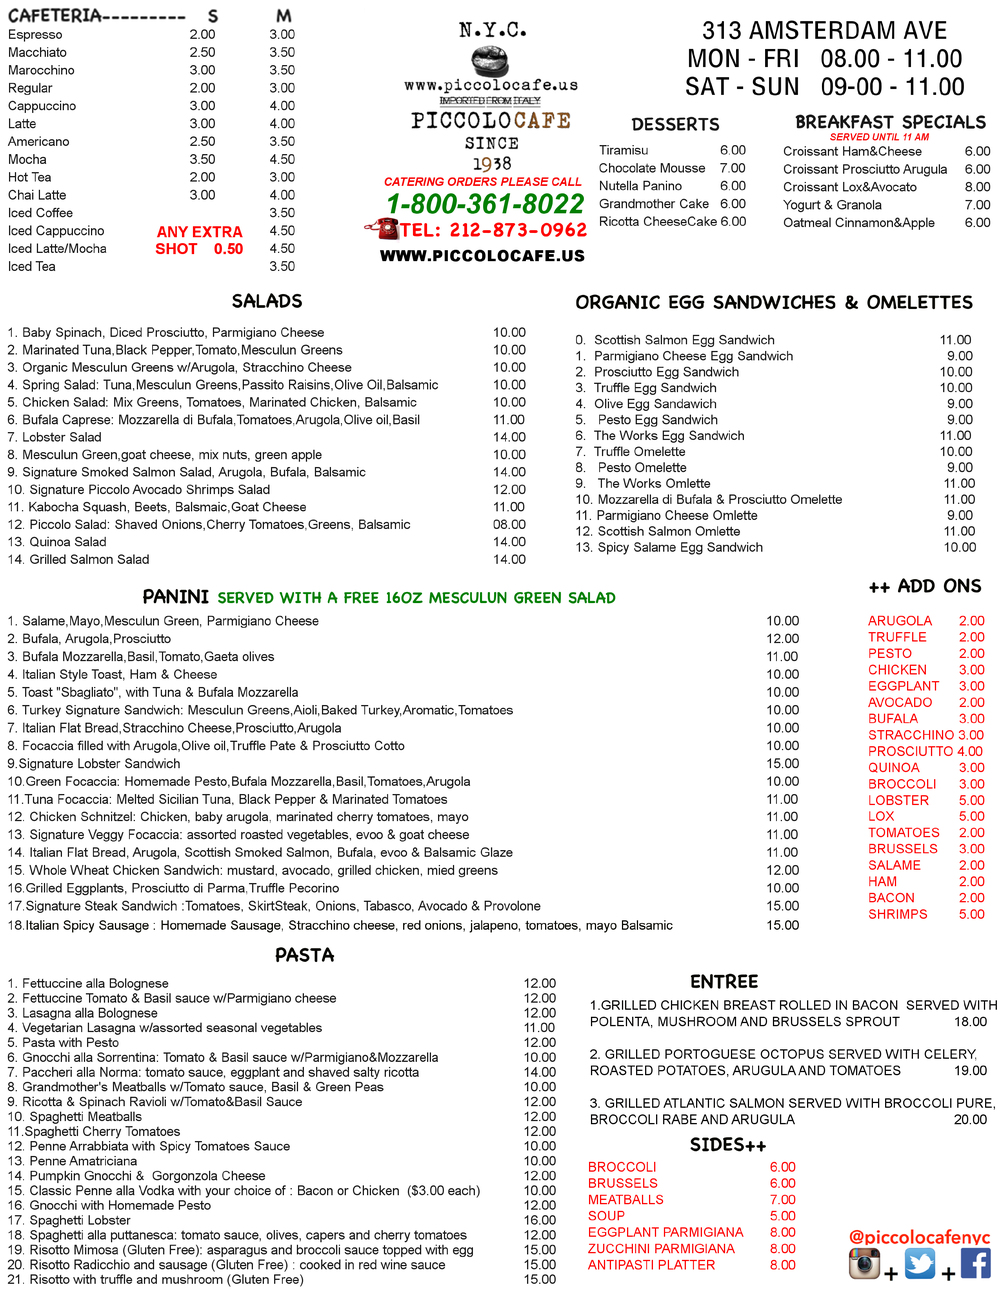 DELIVERY MENU CLICK  HERE